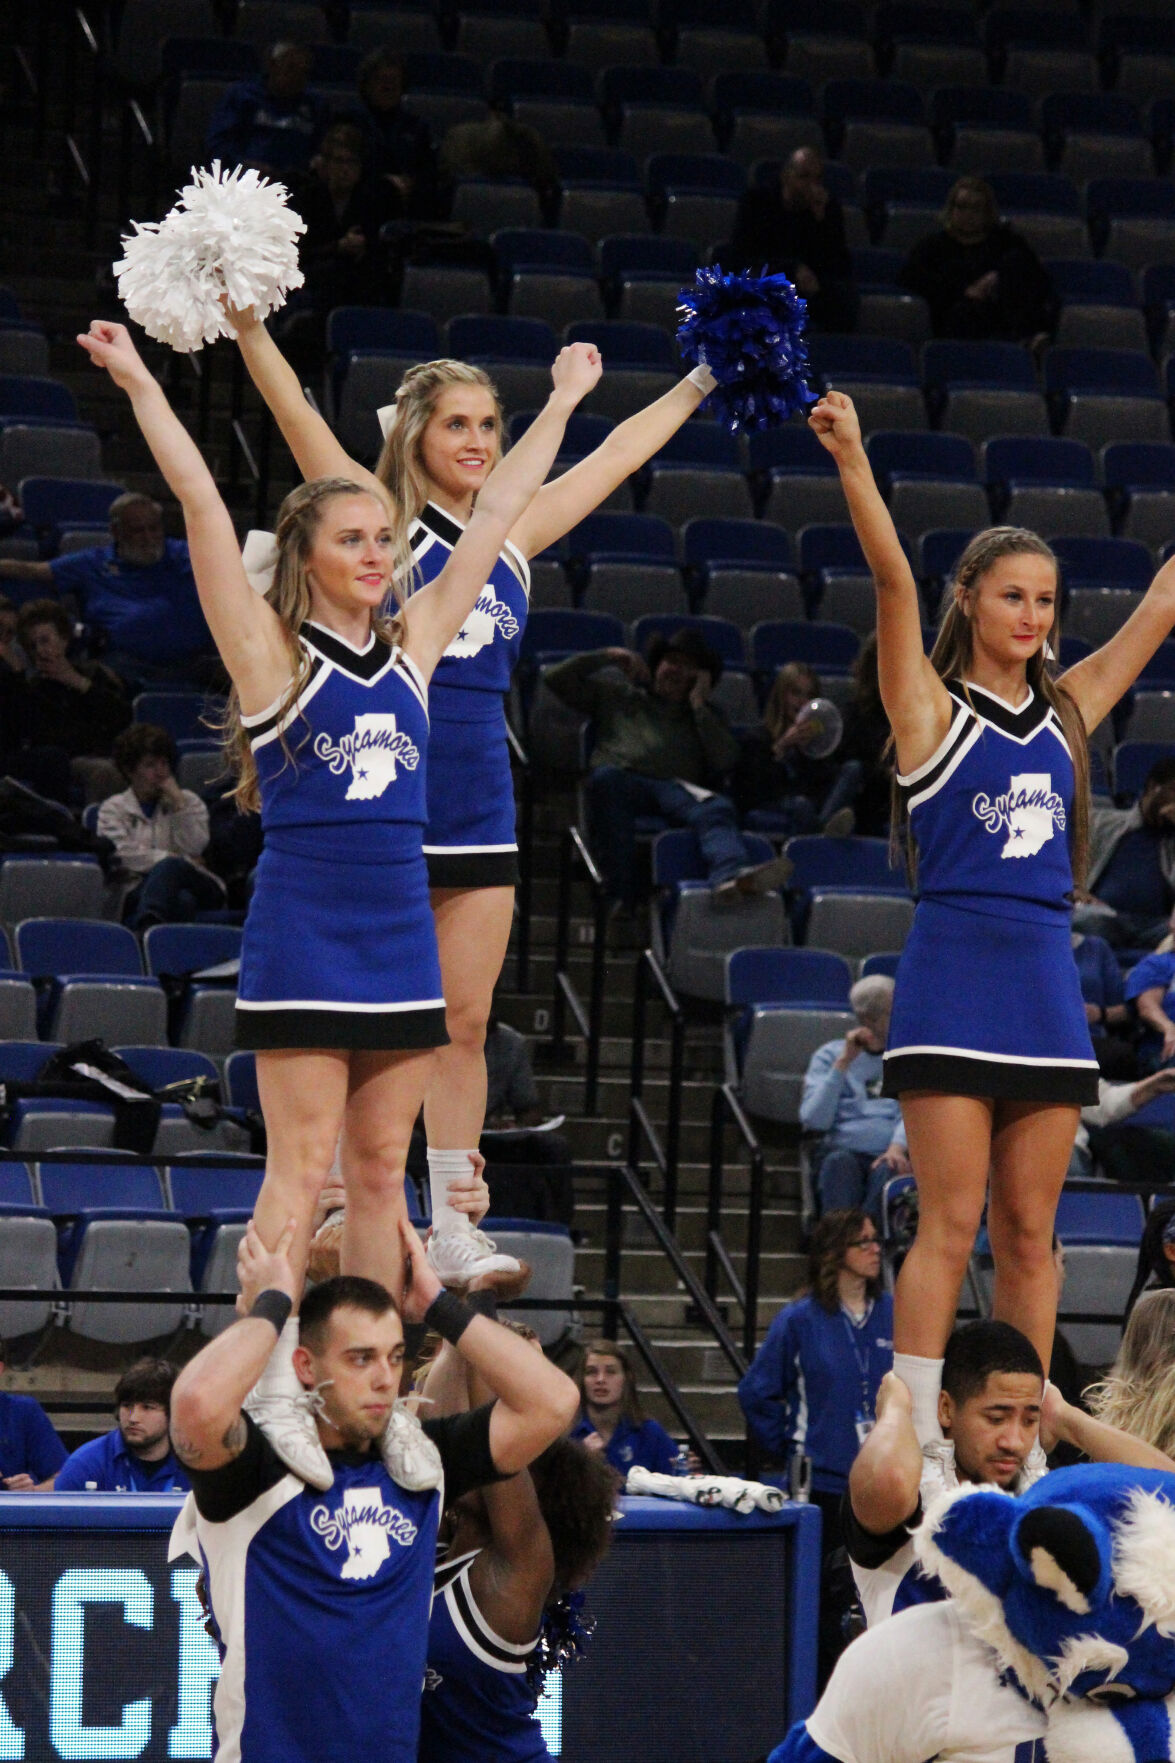 ISU Cheer Team:  Group embraces role as Sycamore ambassadors